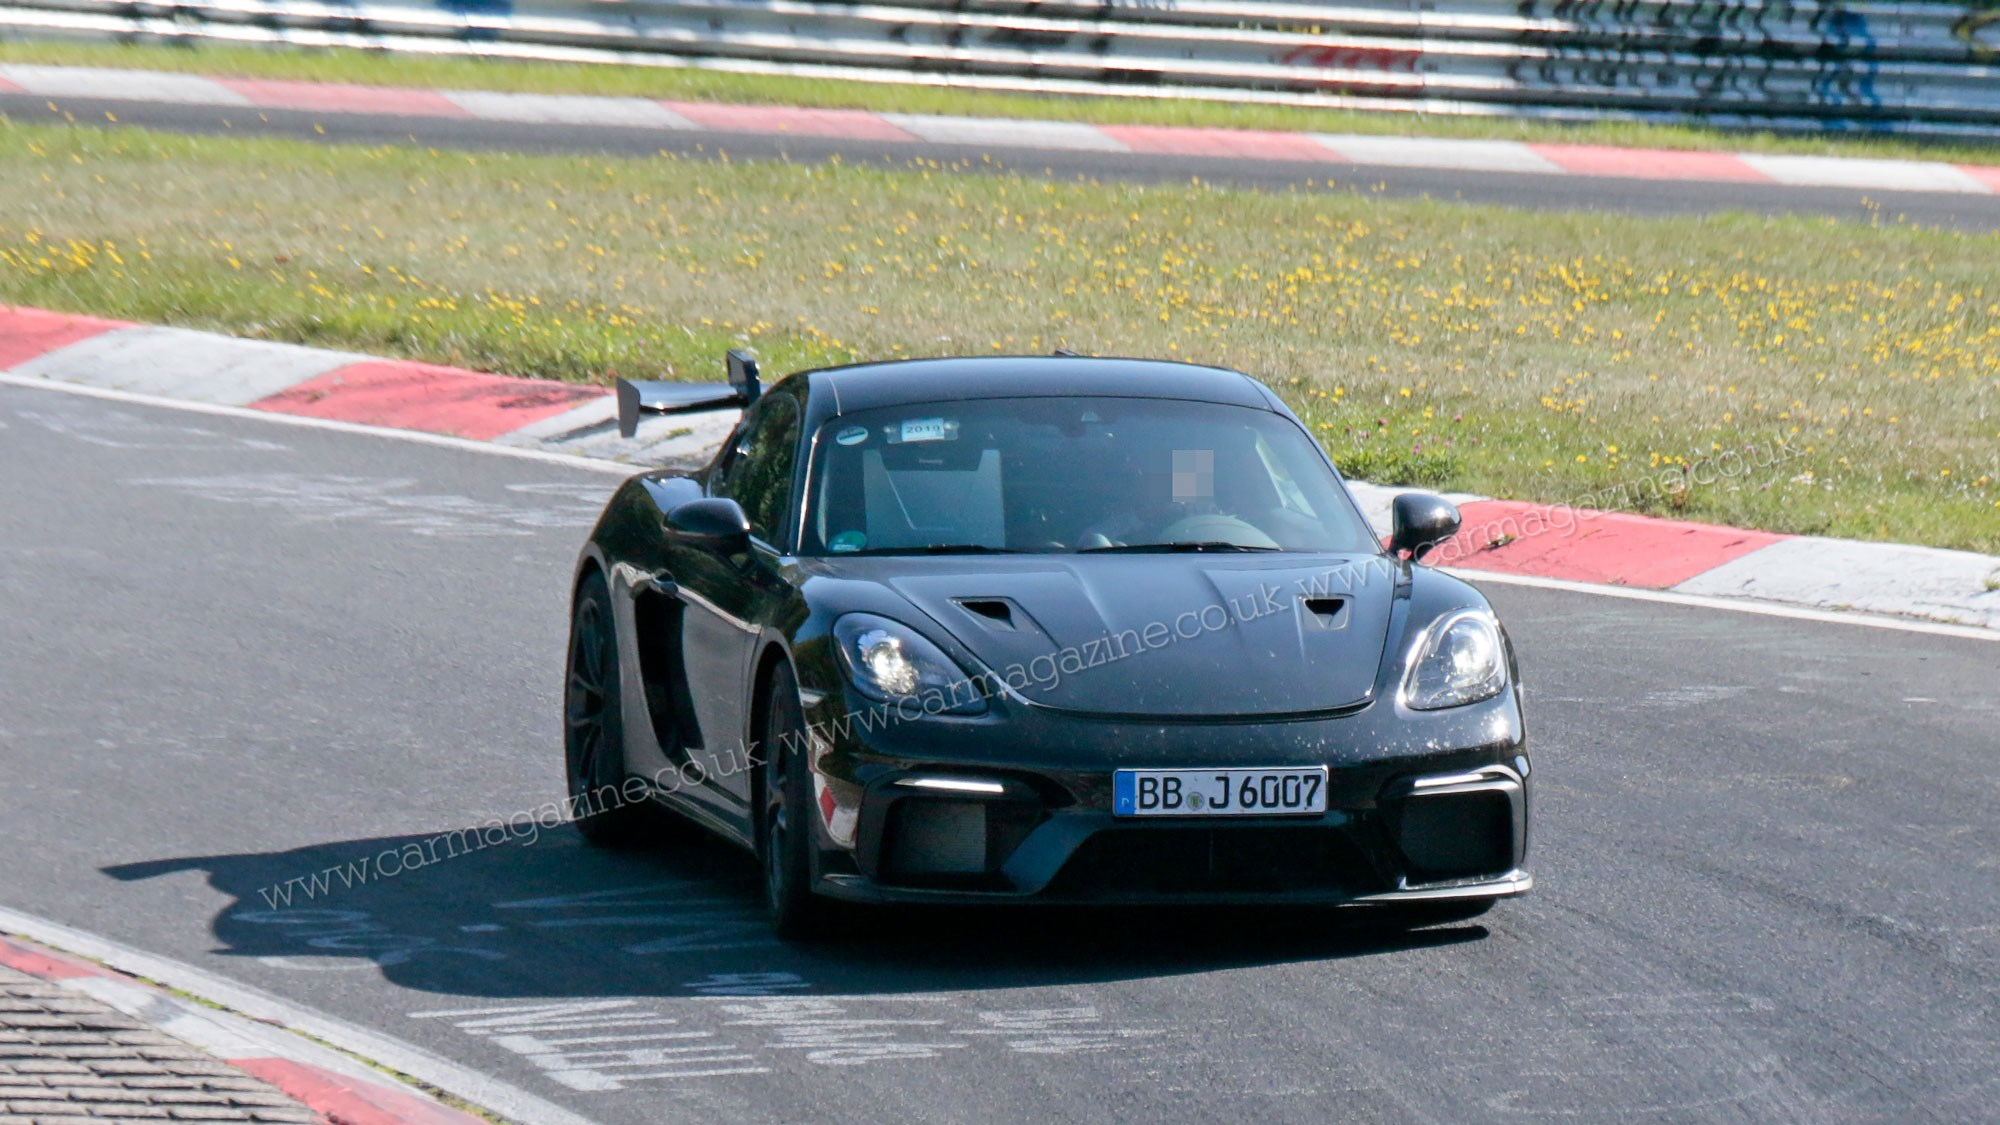 Porsche Gt4 Rs >> Porsche 718 Gt4 Rs Spied Ultimate Cayman Tests At The Ring